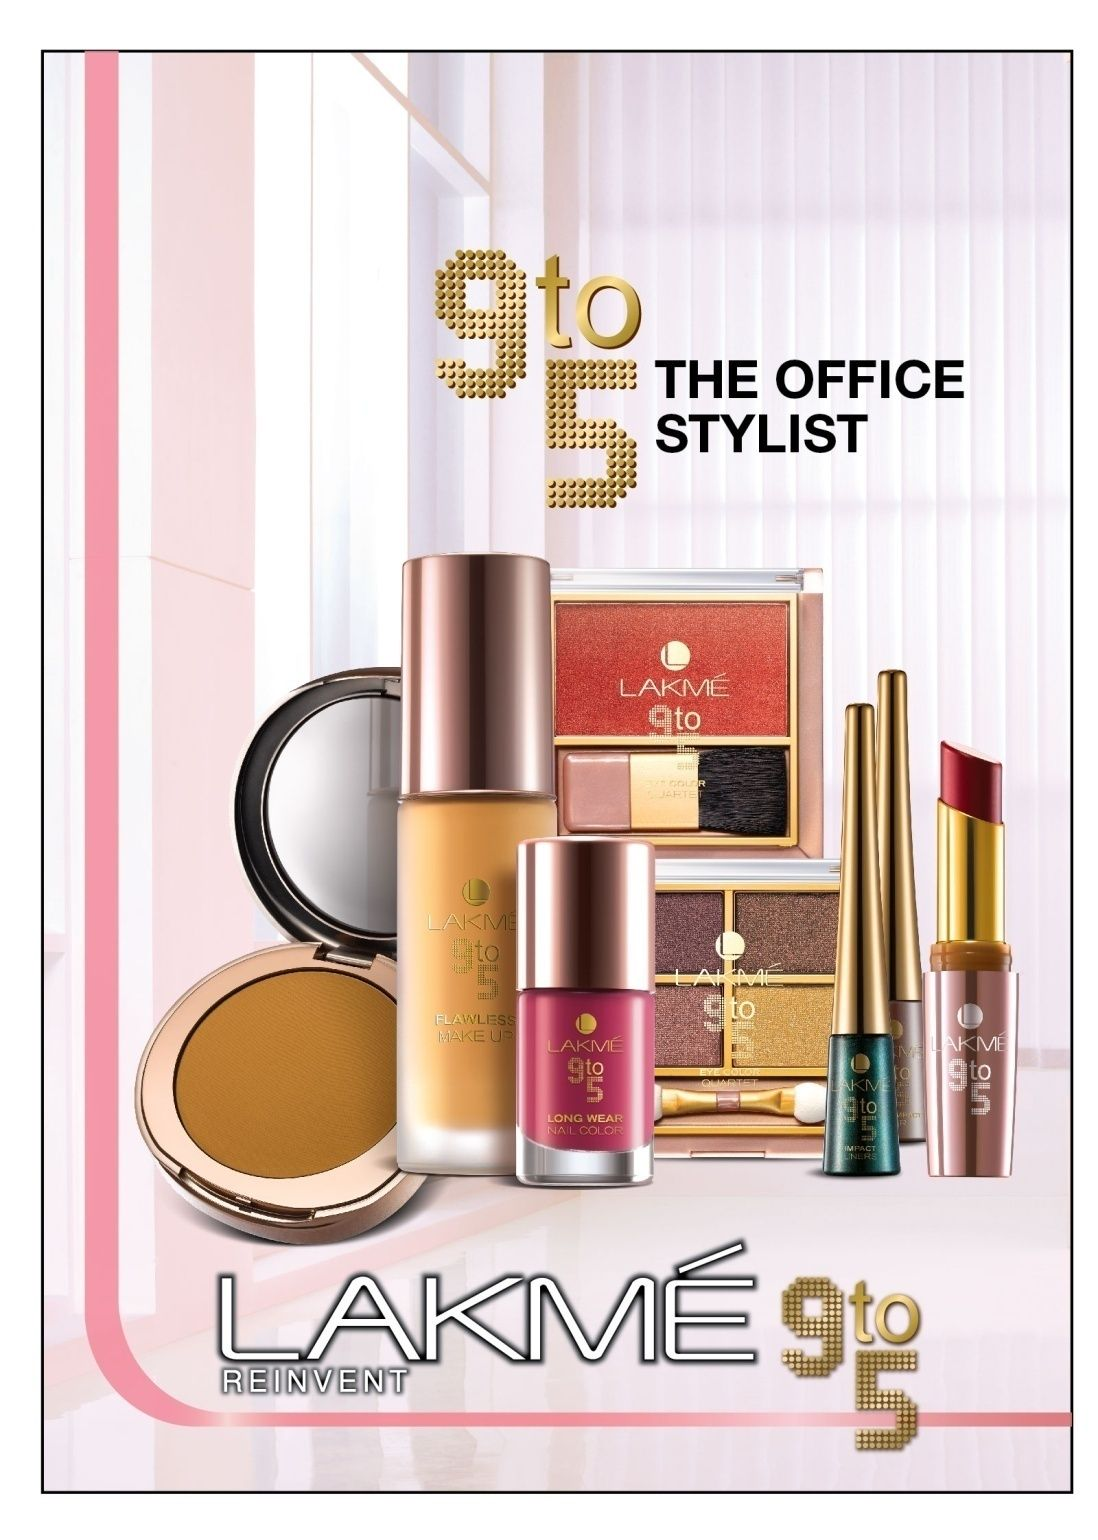 Lakme Makeup Kit | lakme-9-to-5-office-stylist-range|Vanitynoapologies | Indian Makeup .